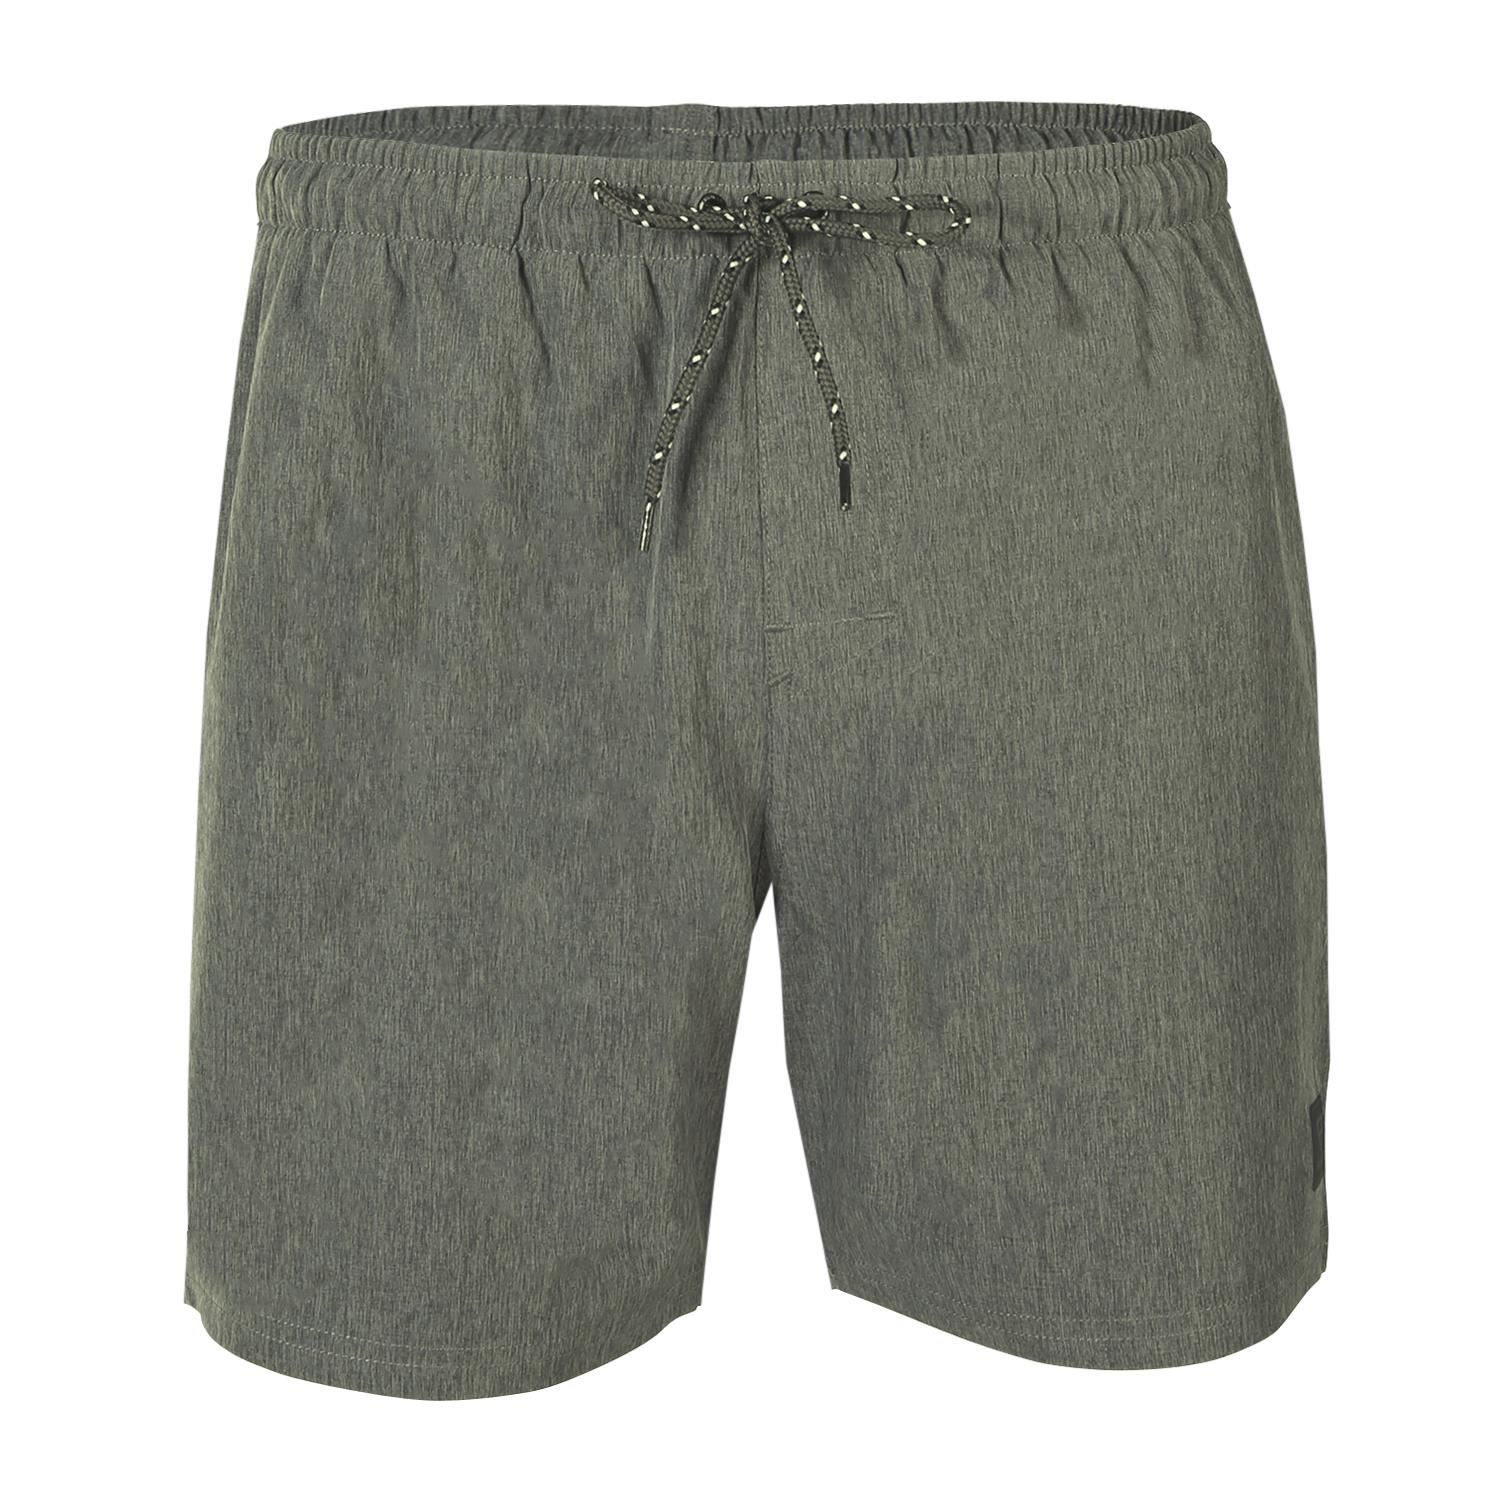 Brunotti Volleyer  (green) - men shorts - Brunotti online shop